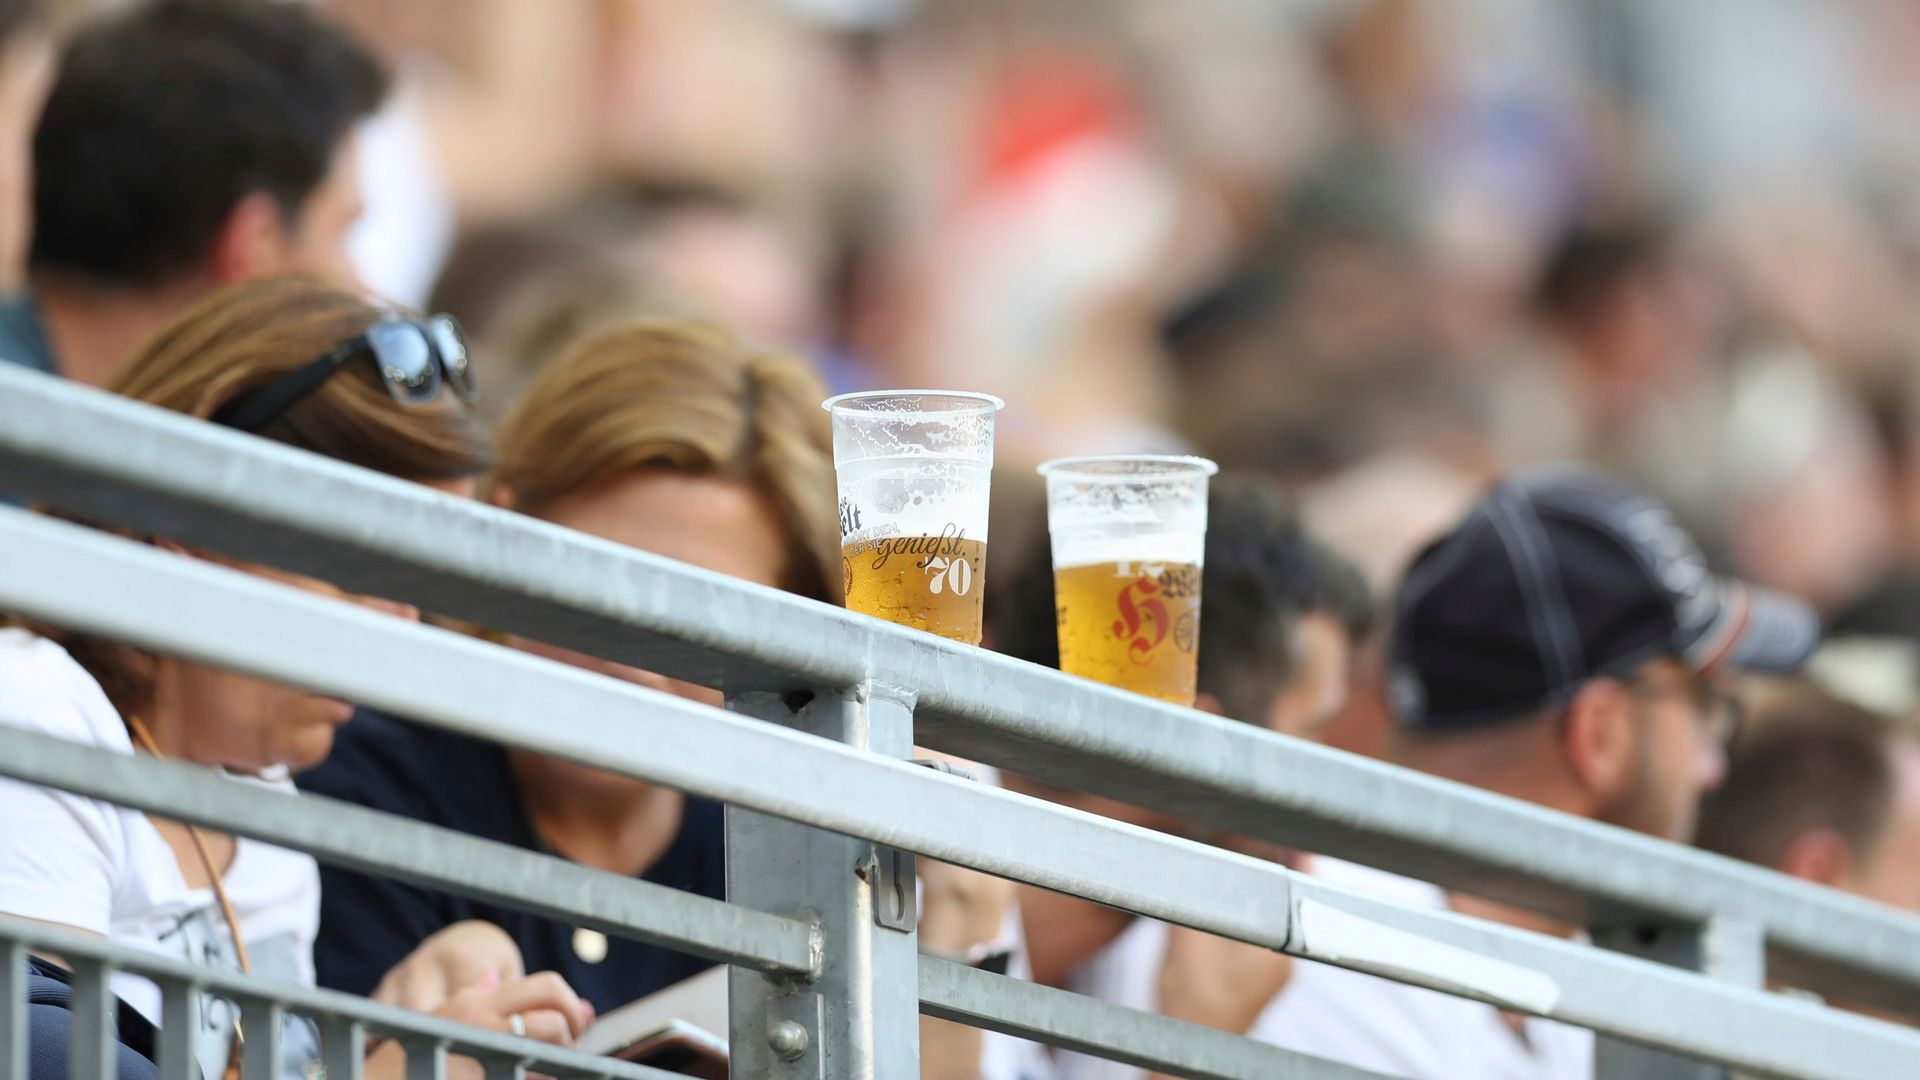 Relaxing pitchside drinking laws 'irresponsible' - police chief